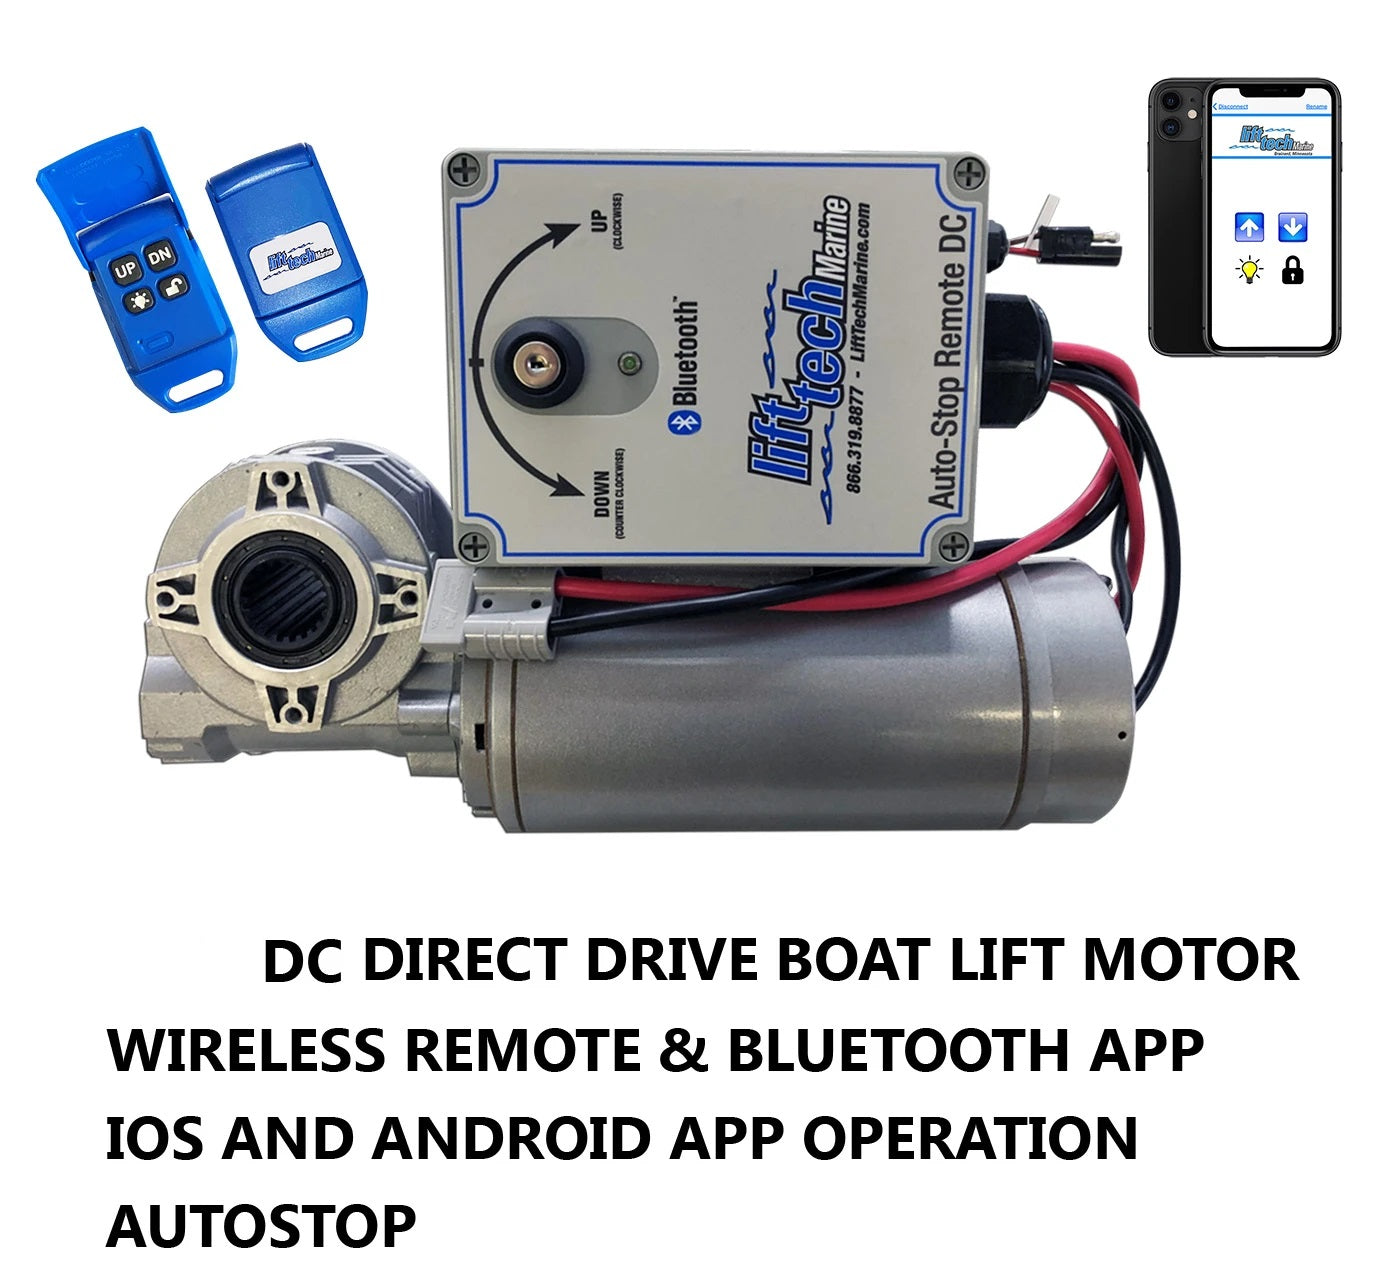 Boat Lift Motor DC 12V/24V Direct Drive (Wireless Remote & Bluetooth Mobile App w/ Auto Stop) - Lift Marine